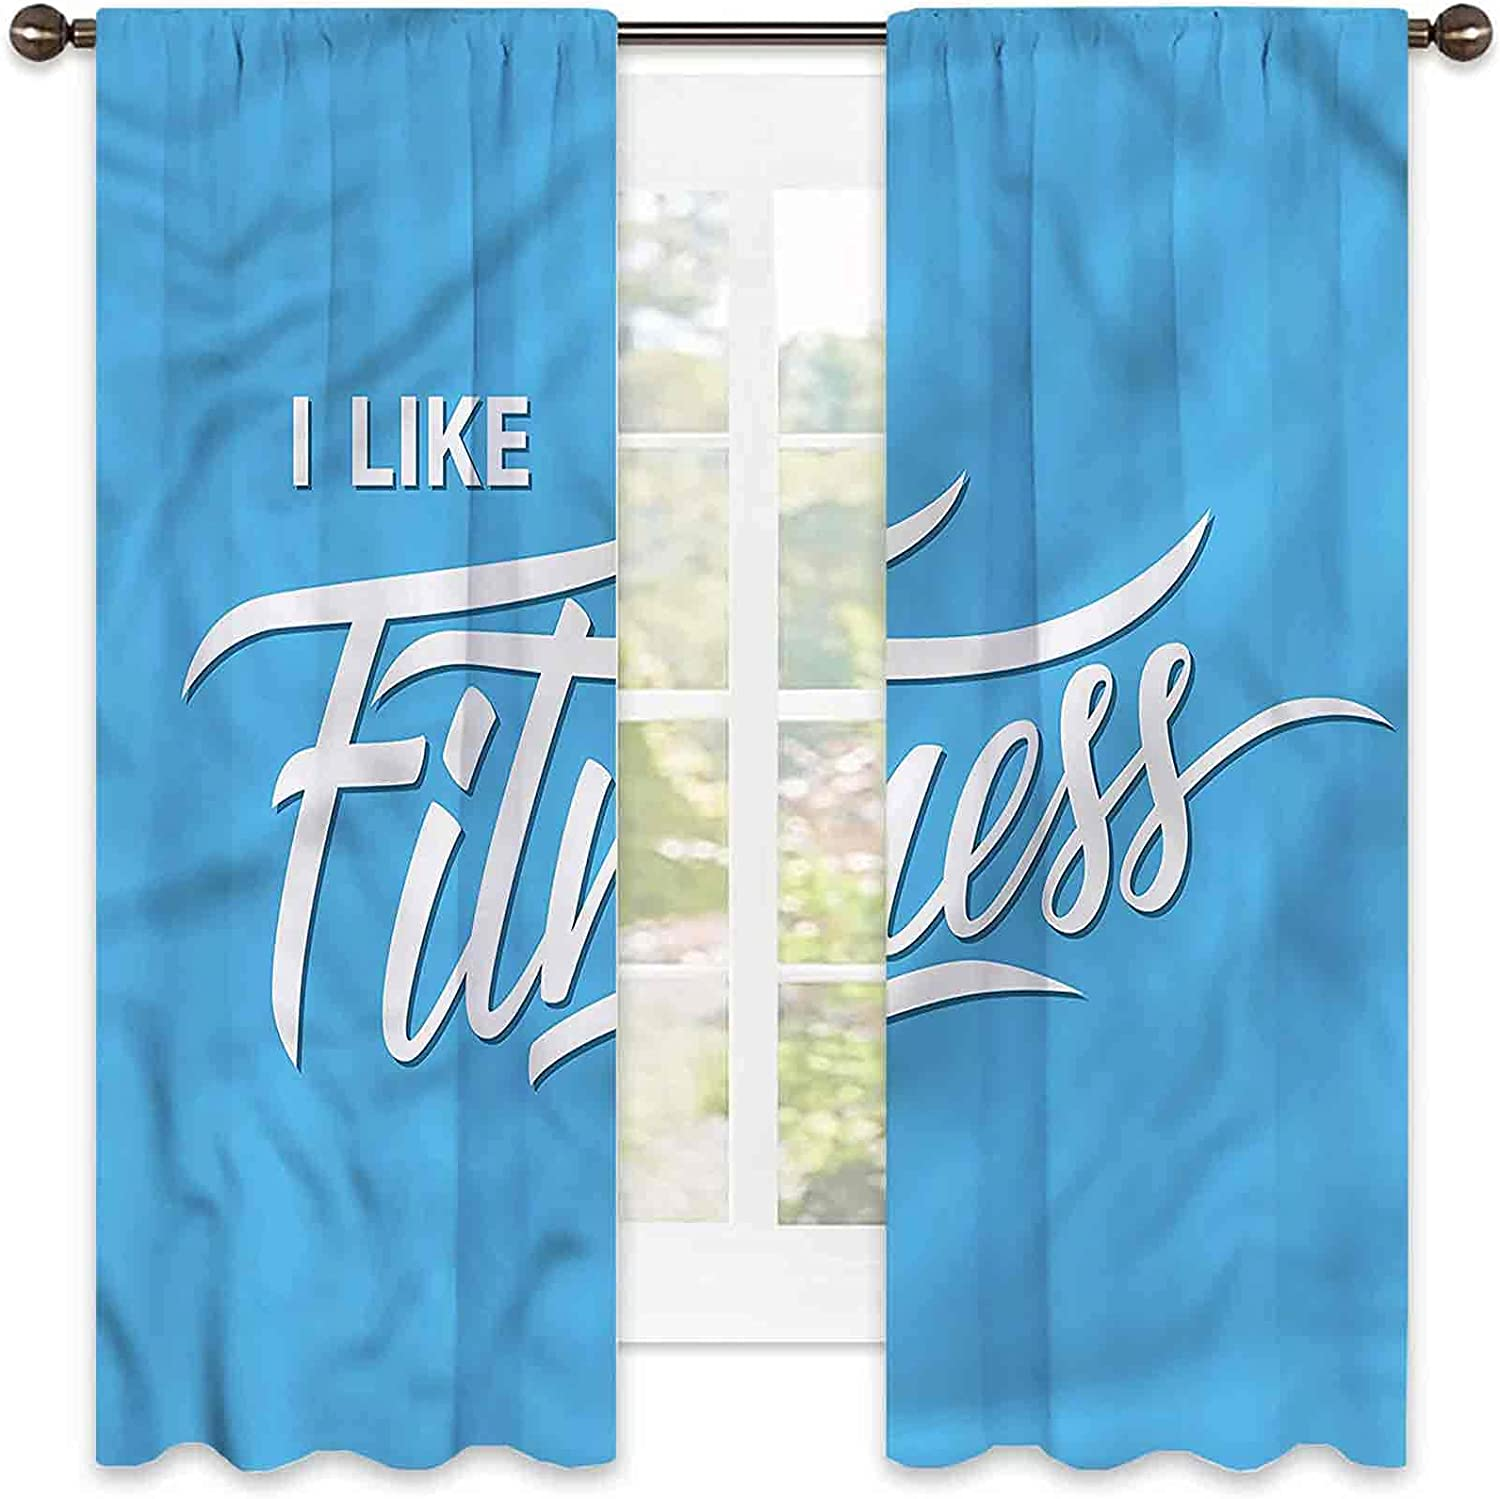 Fitness 90% Blackout Special price Curtains Waterproof Max 50% OFF Like I Quote